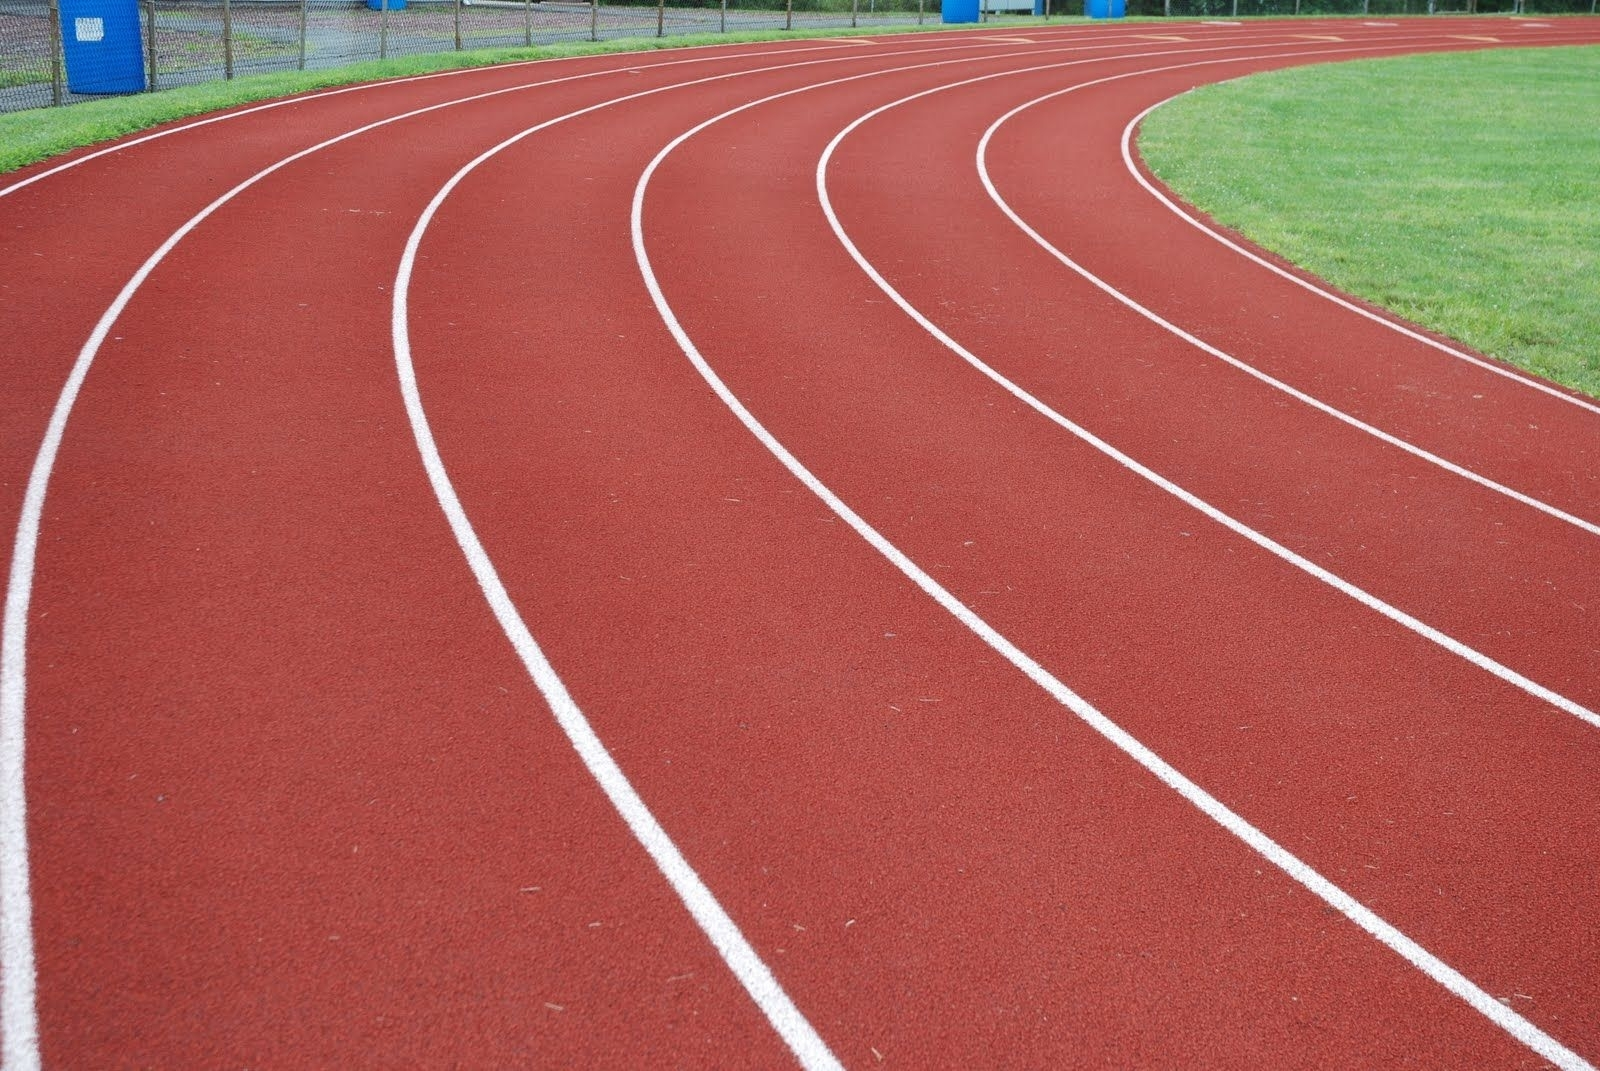 track and field wallpapers wallpaper | hd wallpapers | pinterest